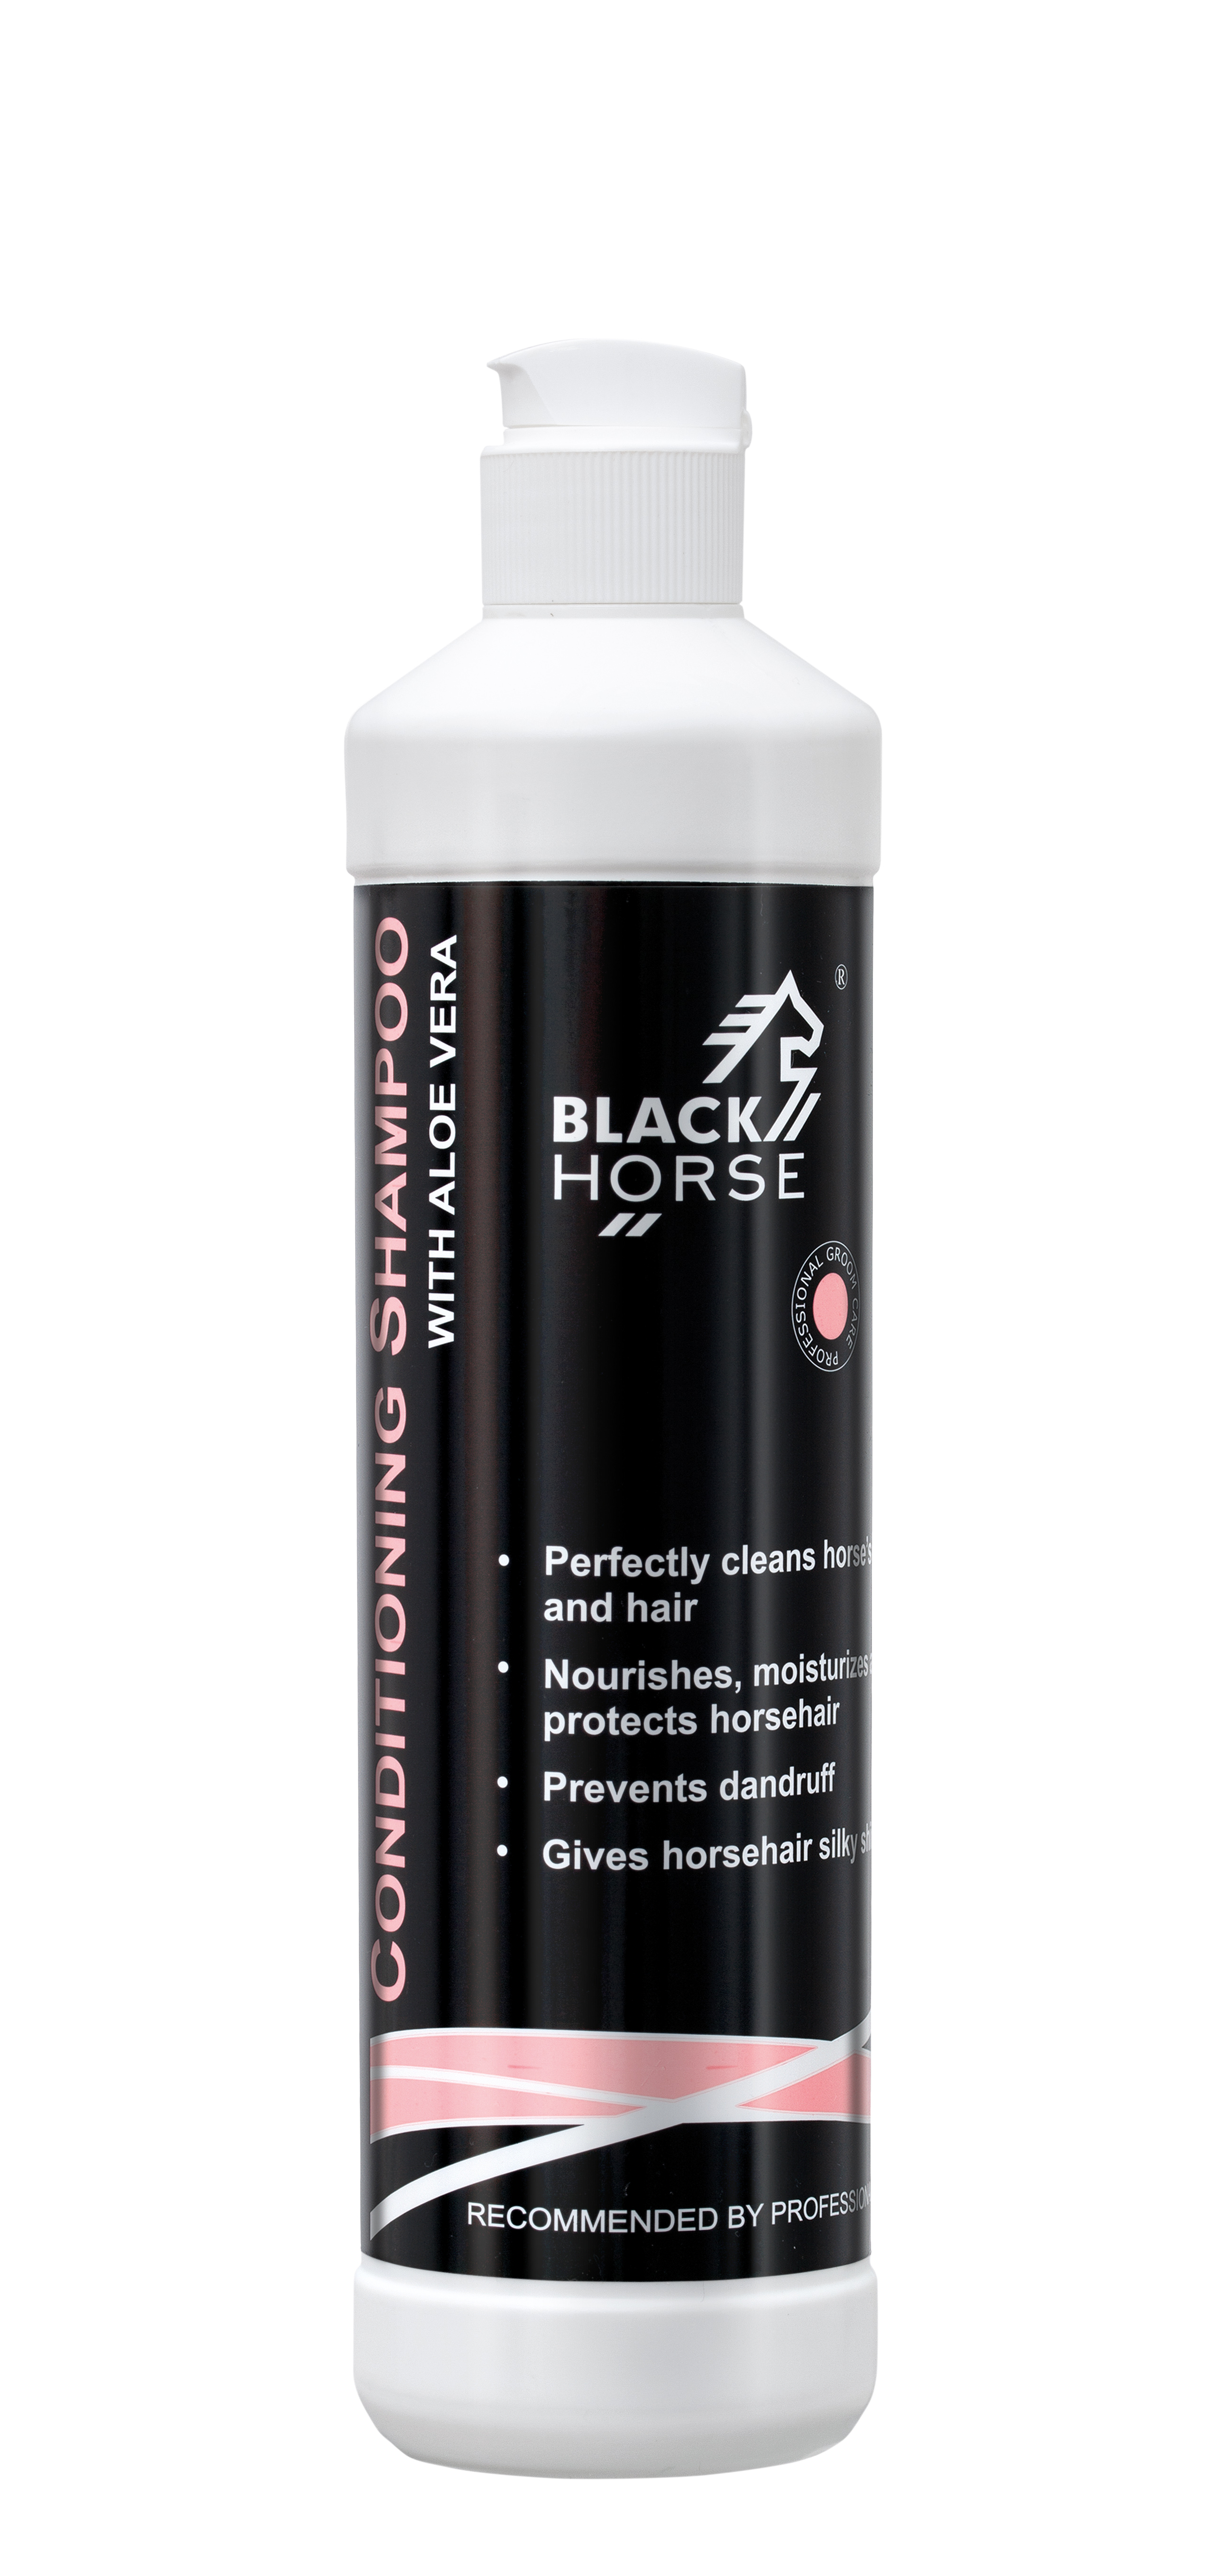 Black Horse - Čistící šampon (Conditioning Shampoo) 500 ml